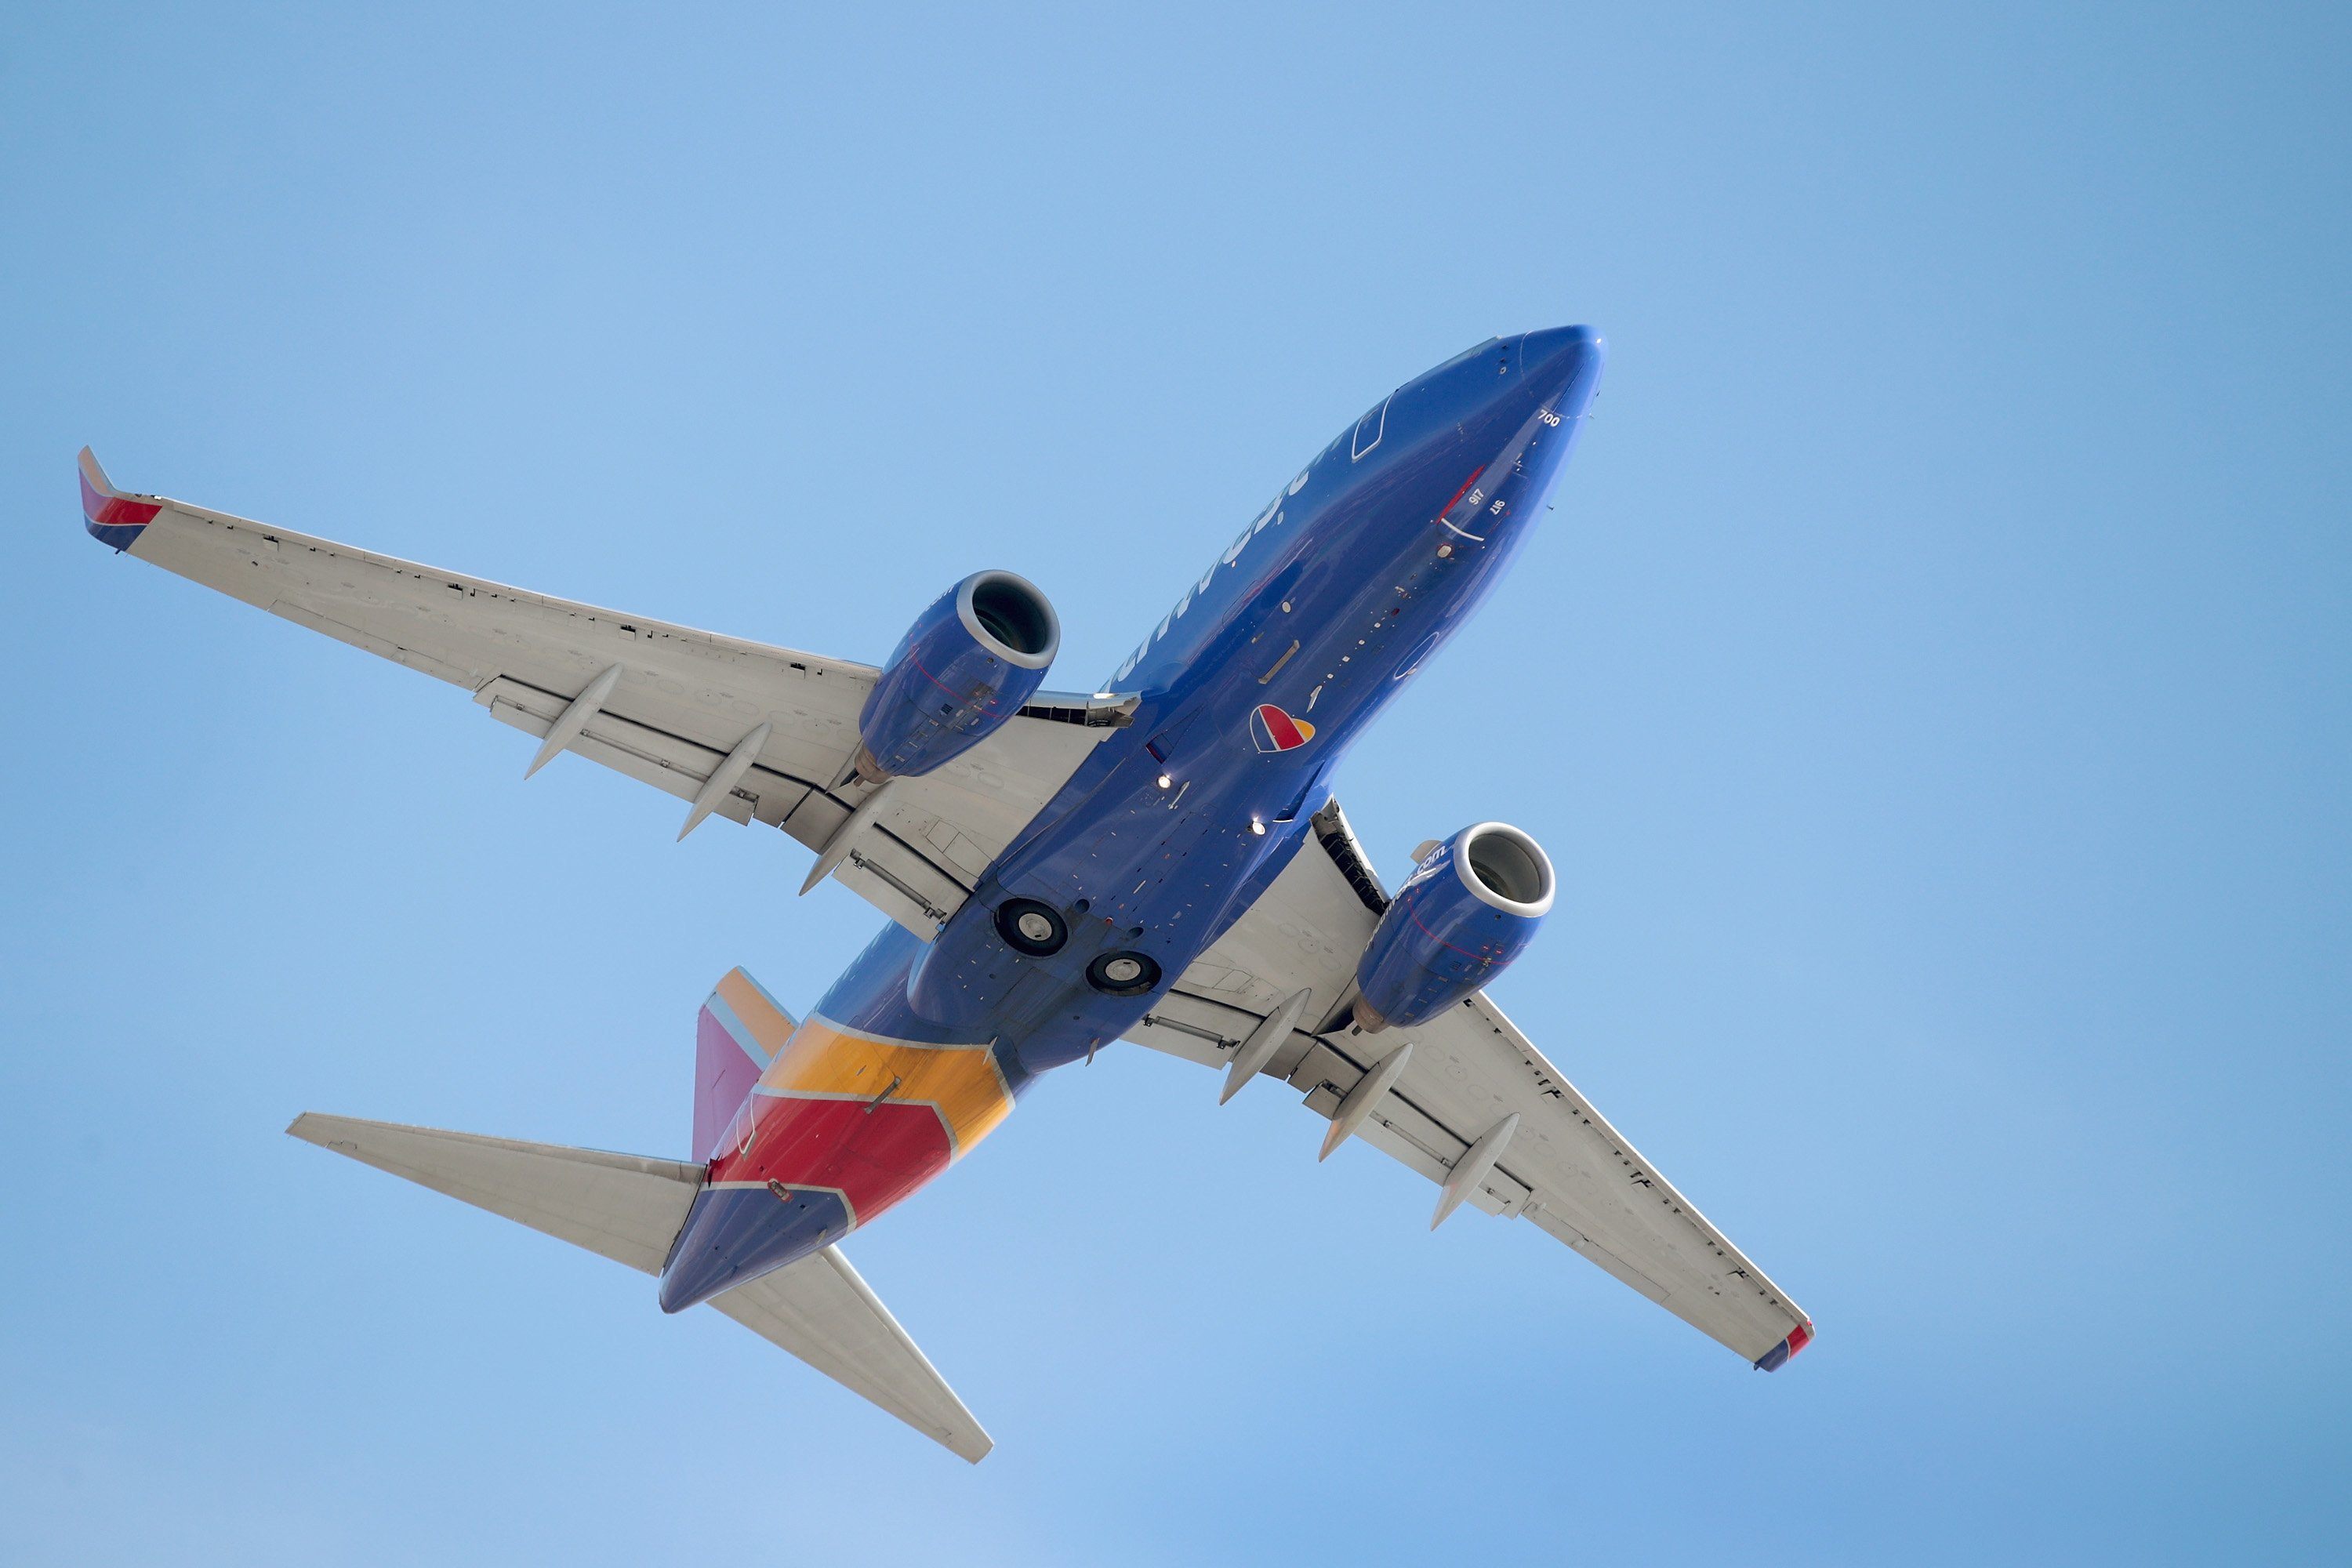 Southwest Airlines flew jets without full knowledge of their repair histories